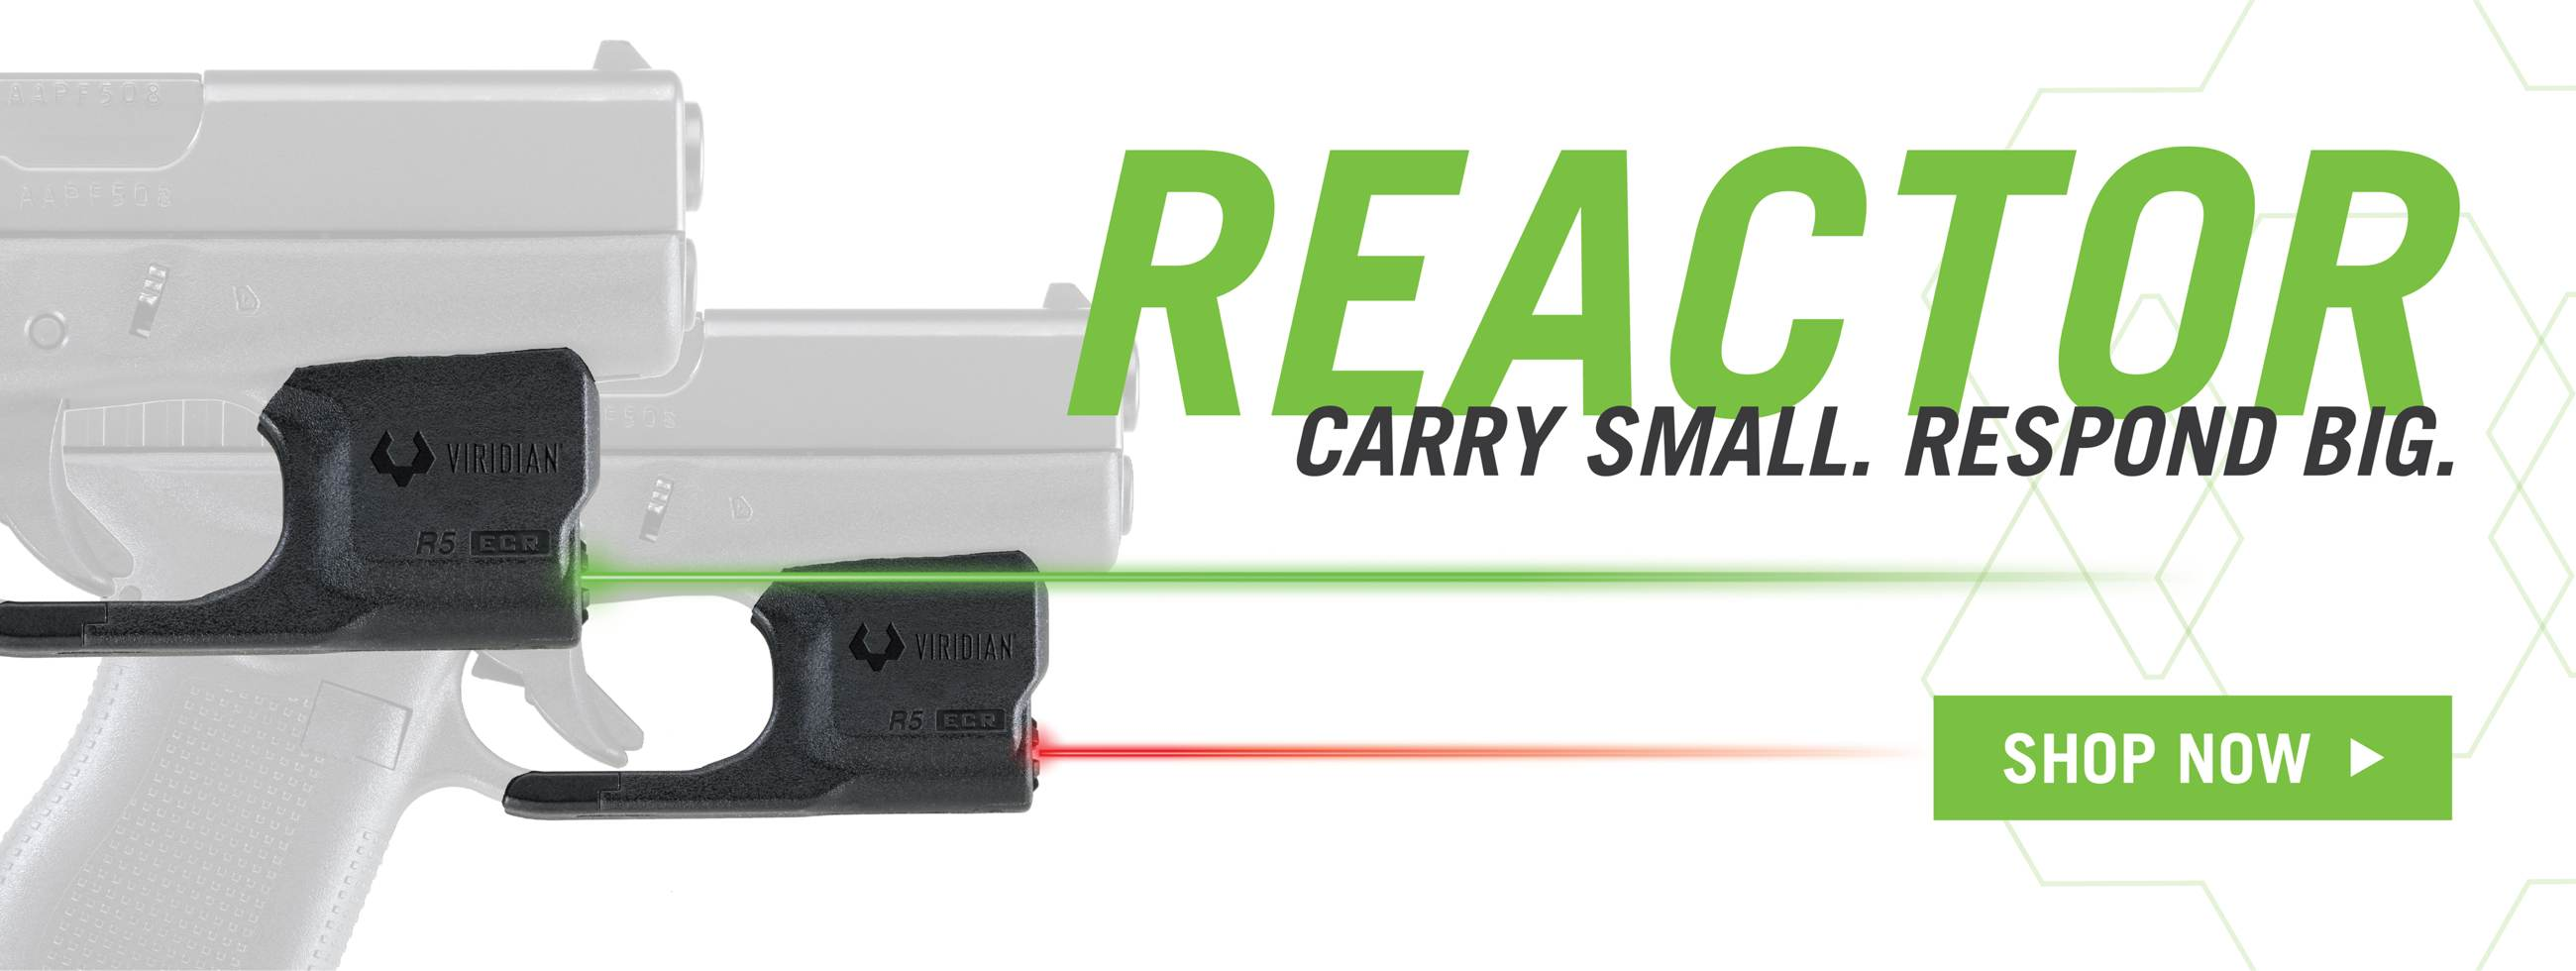 Reactor - Carry Small, Respond Big